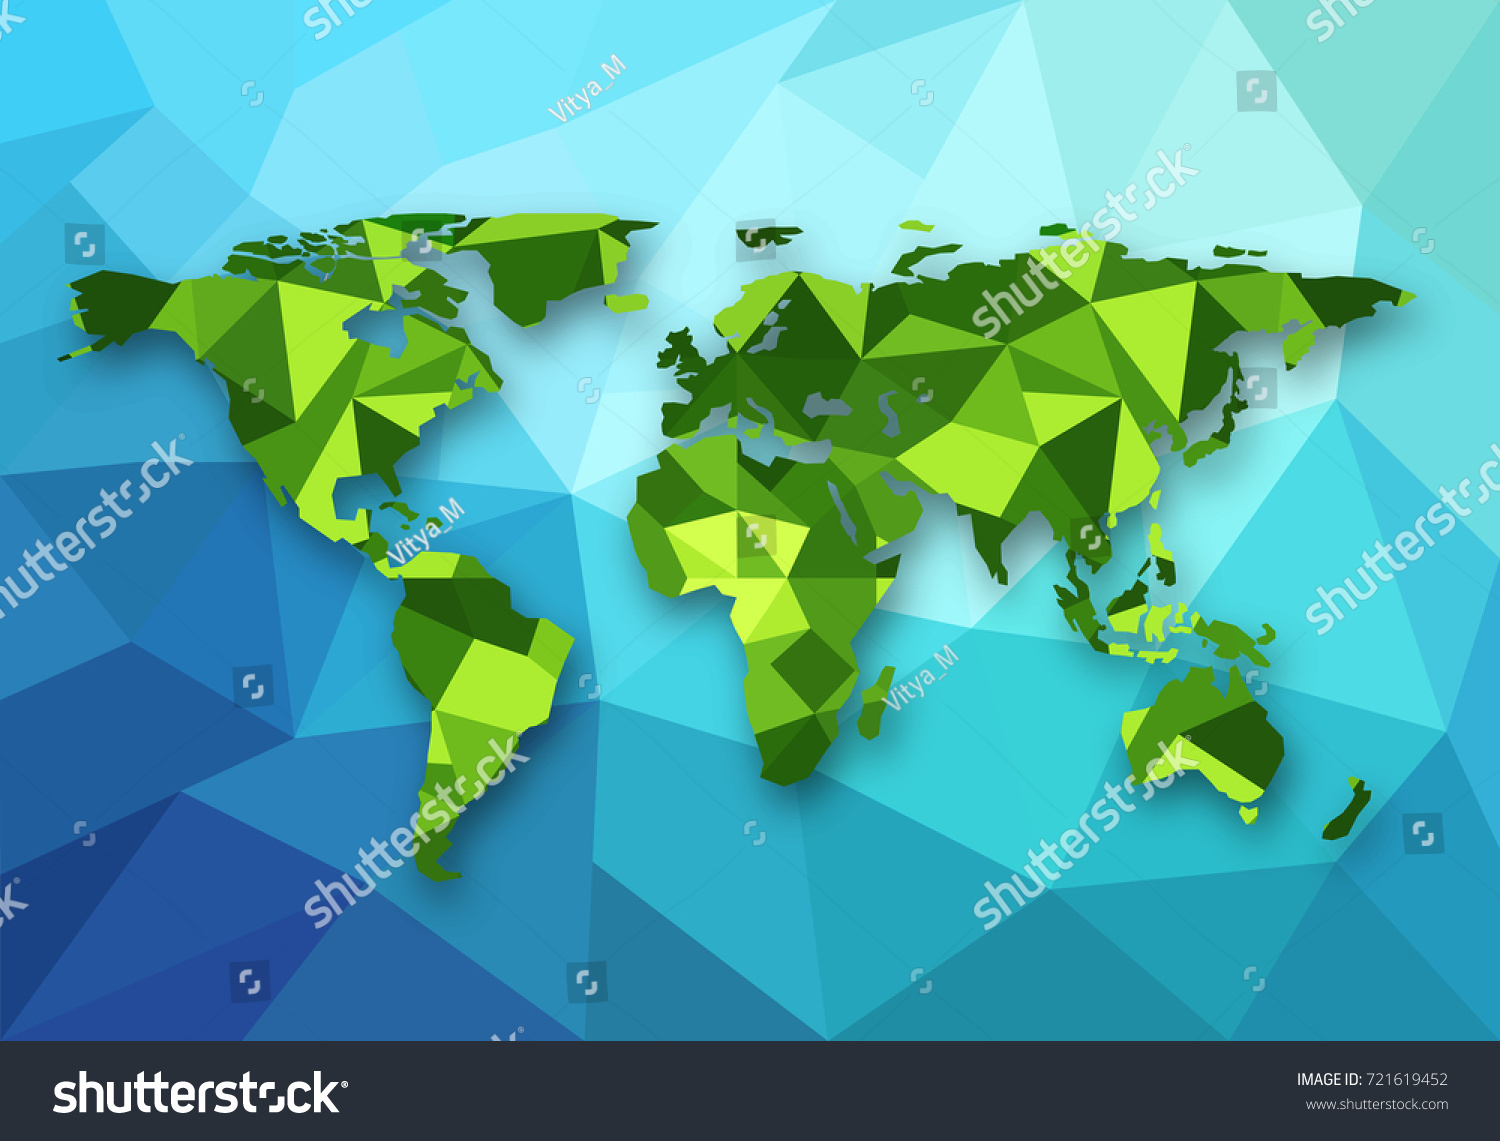 Vector polygonal world map low poly vectores en stock 721619452 vector polygonal world map low poly design origami planet illustration conceptual world map gumiabroncs Choice Image